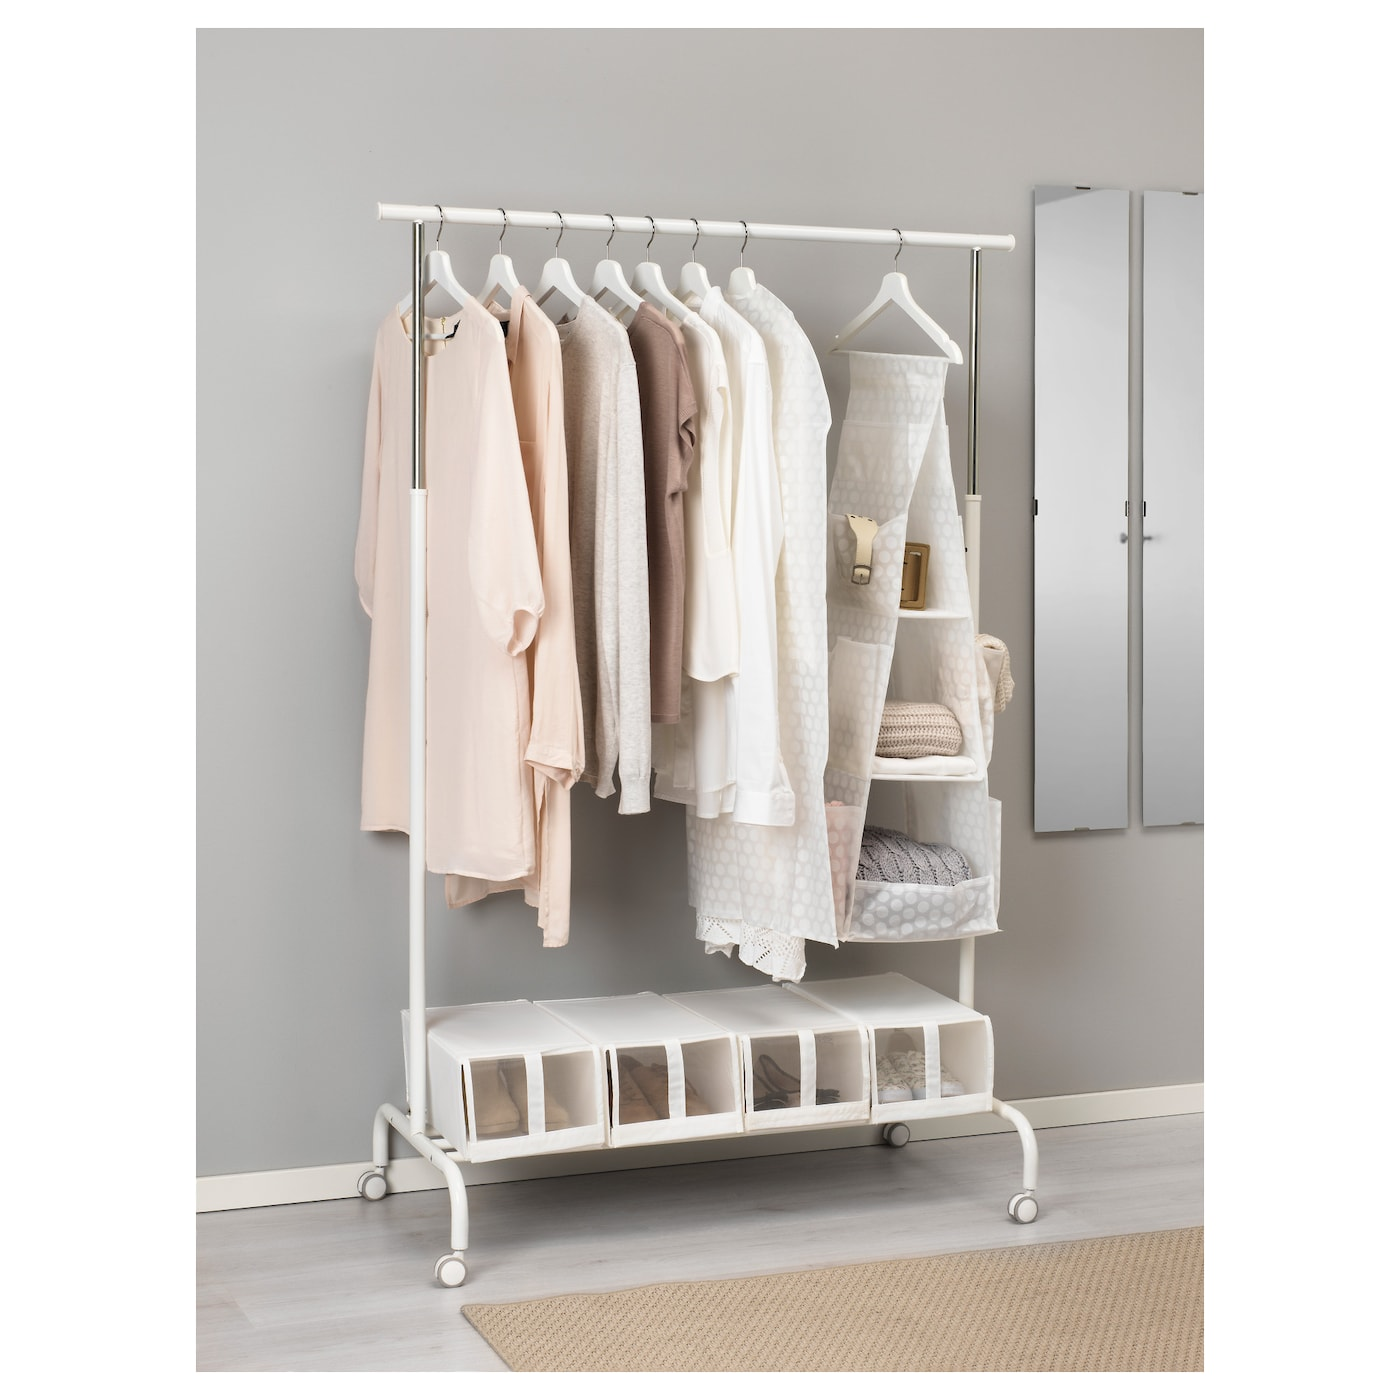 PLURING Hanging Storage With 3 Compartments White 30 X 30